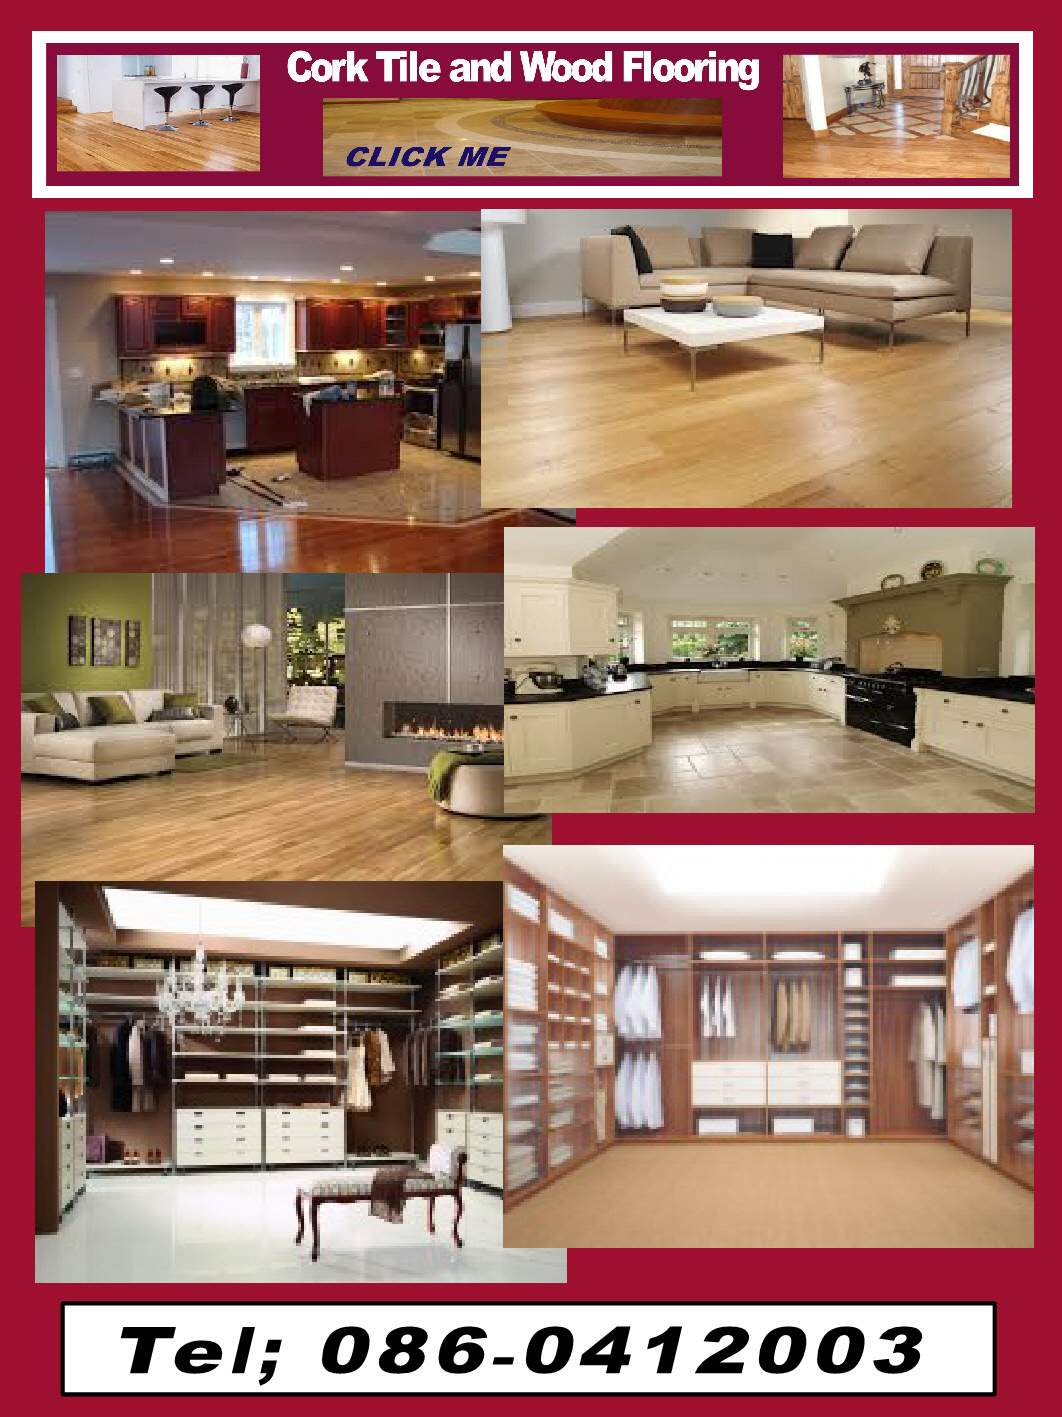 Show. Cork Tile And Wood Flooring   tiles and wooden floors in cork  Co